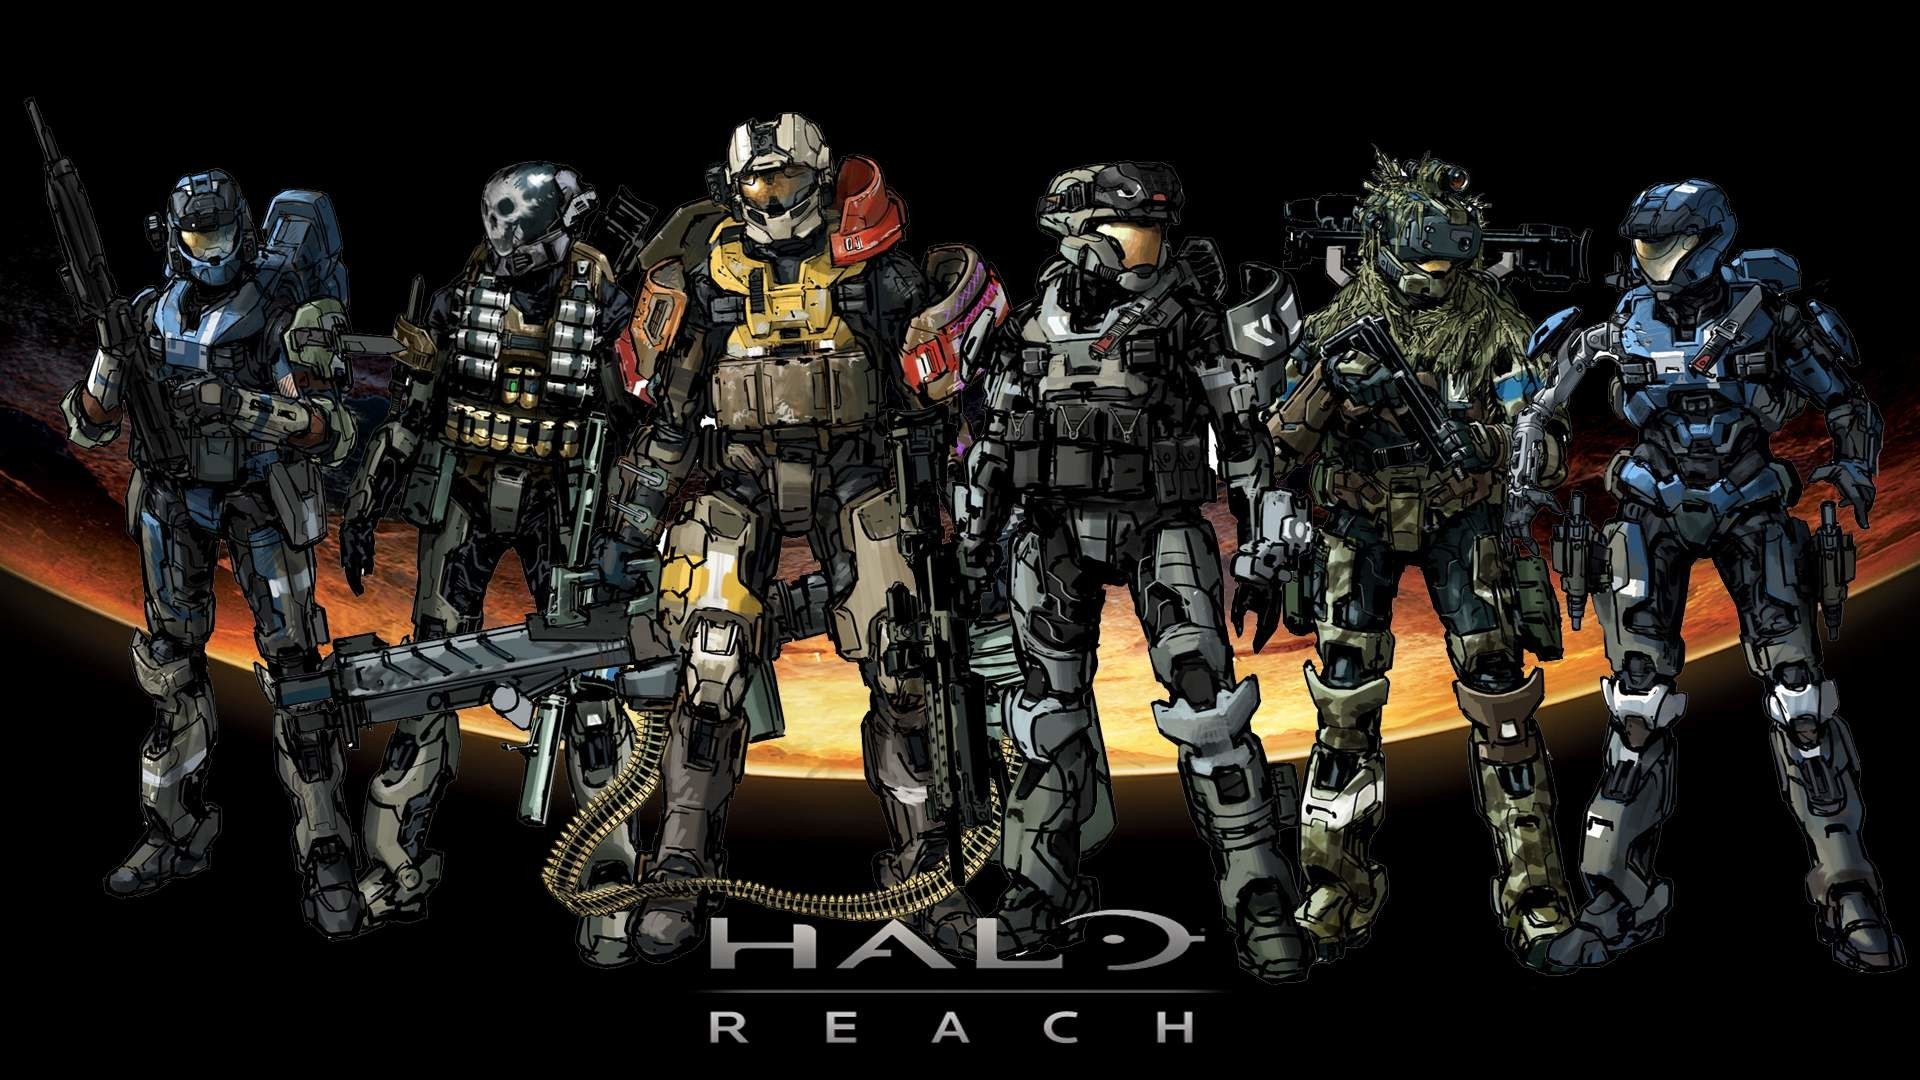 Halo Reach wallpaper (#755855) / Wallbase.cc   Wallpapers.   Pinterest    Halo reach and Wallpaper